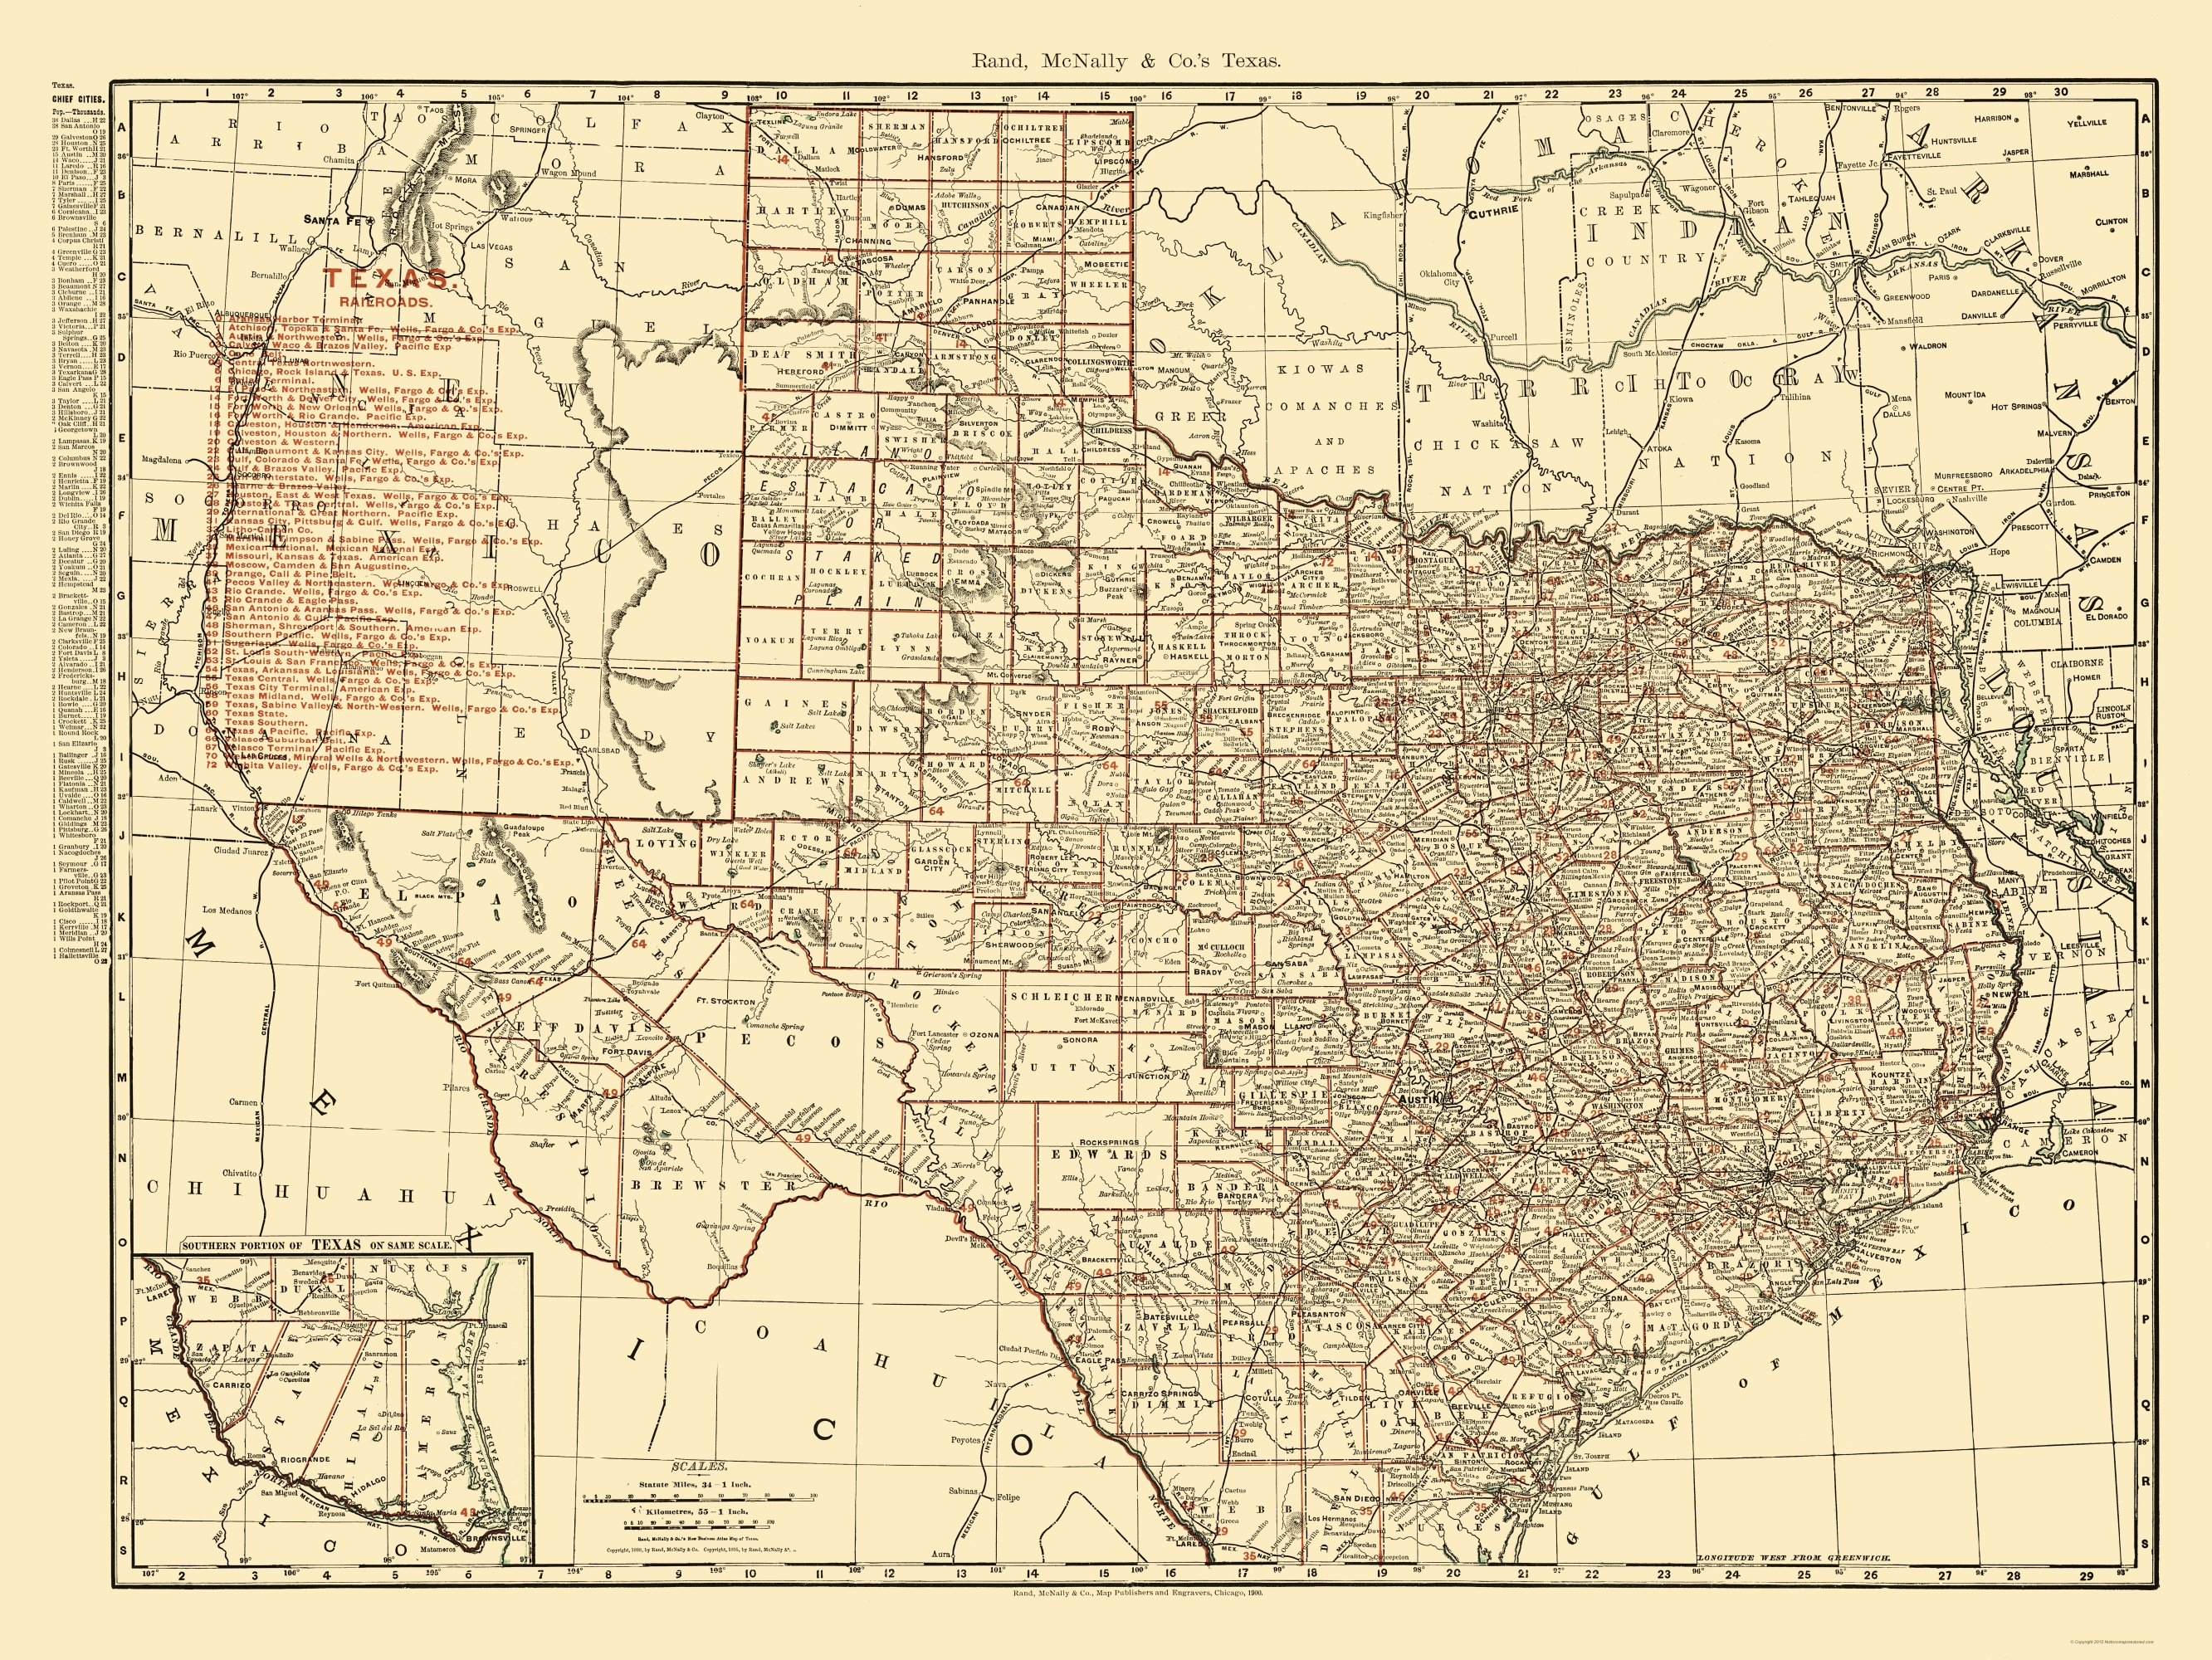 Old Railroad Map Texas State Railroads - State map of tx